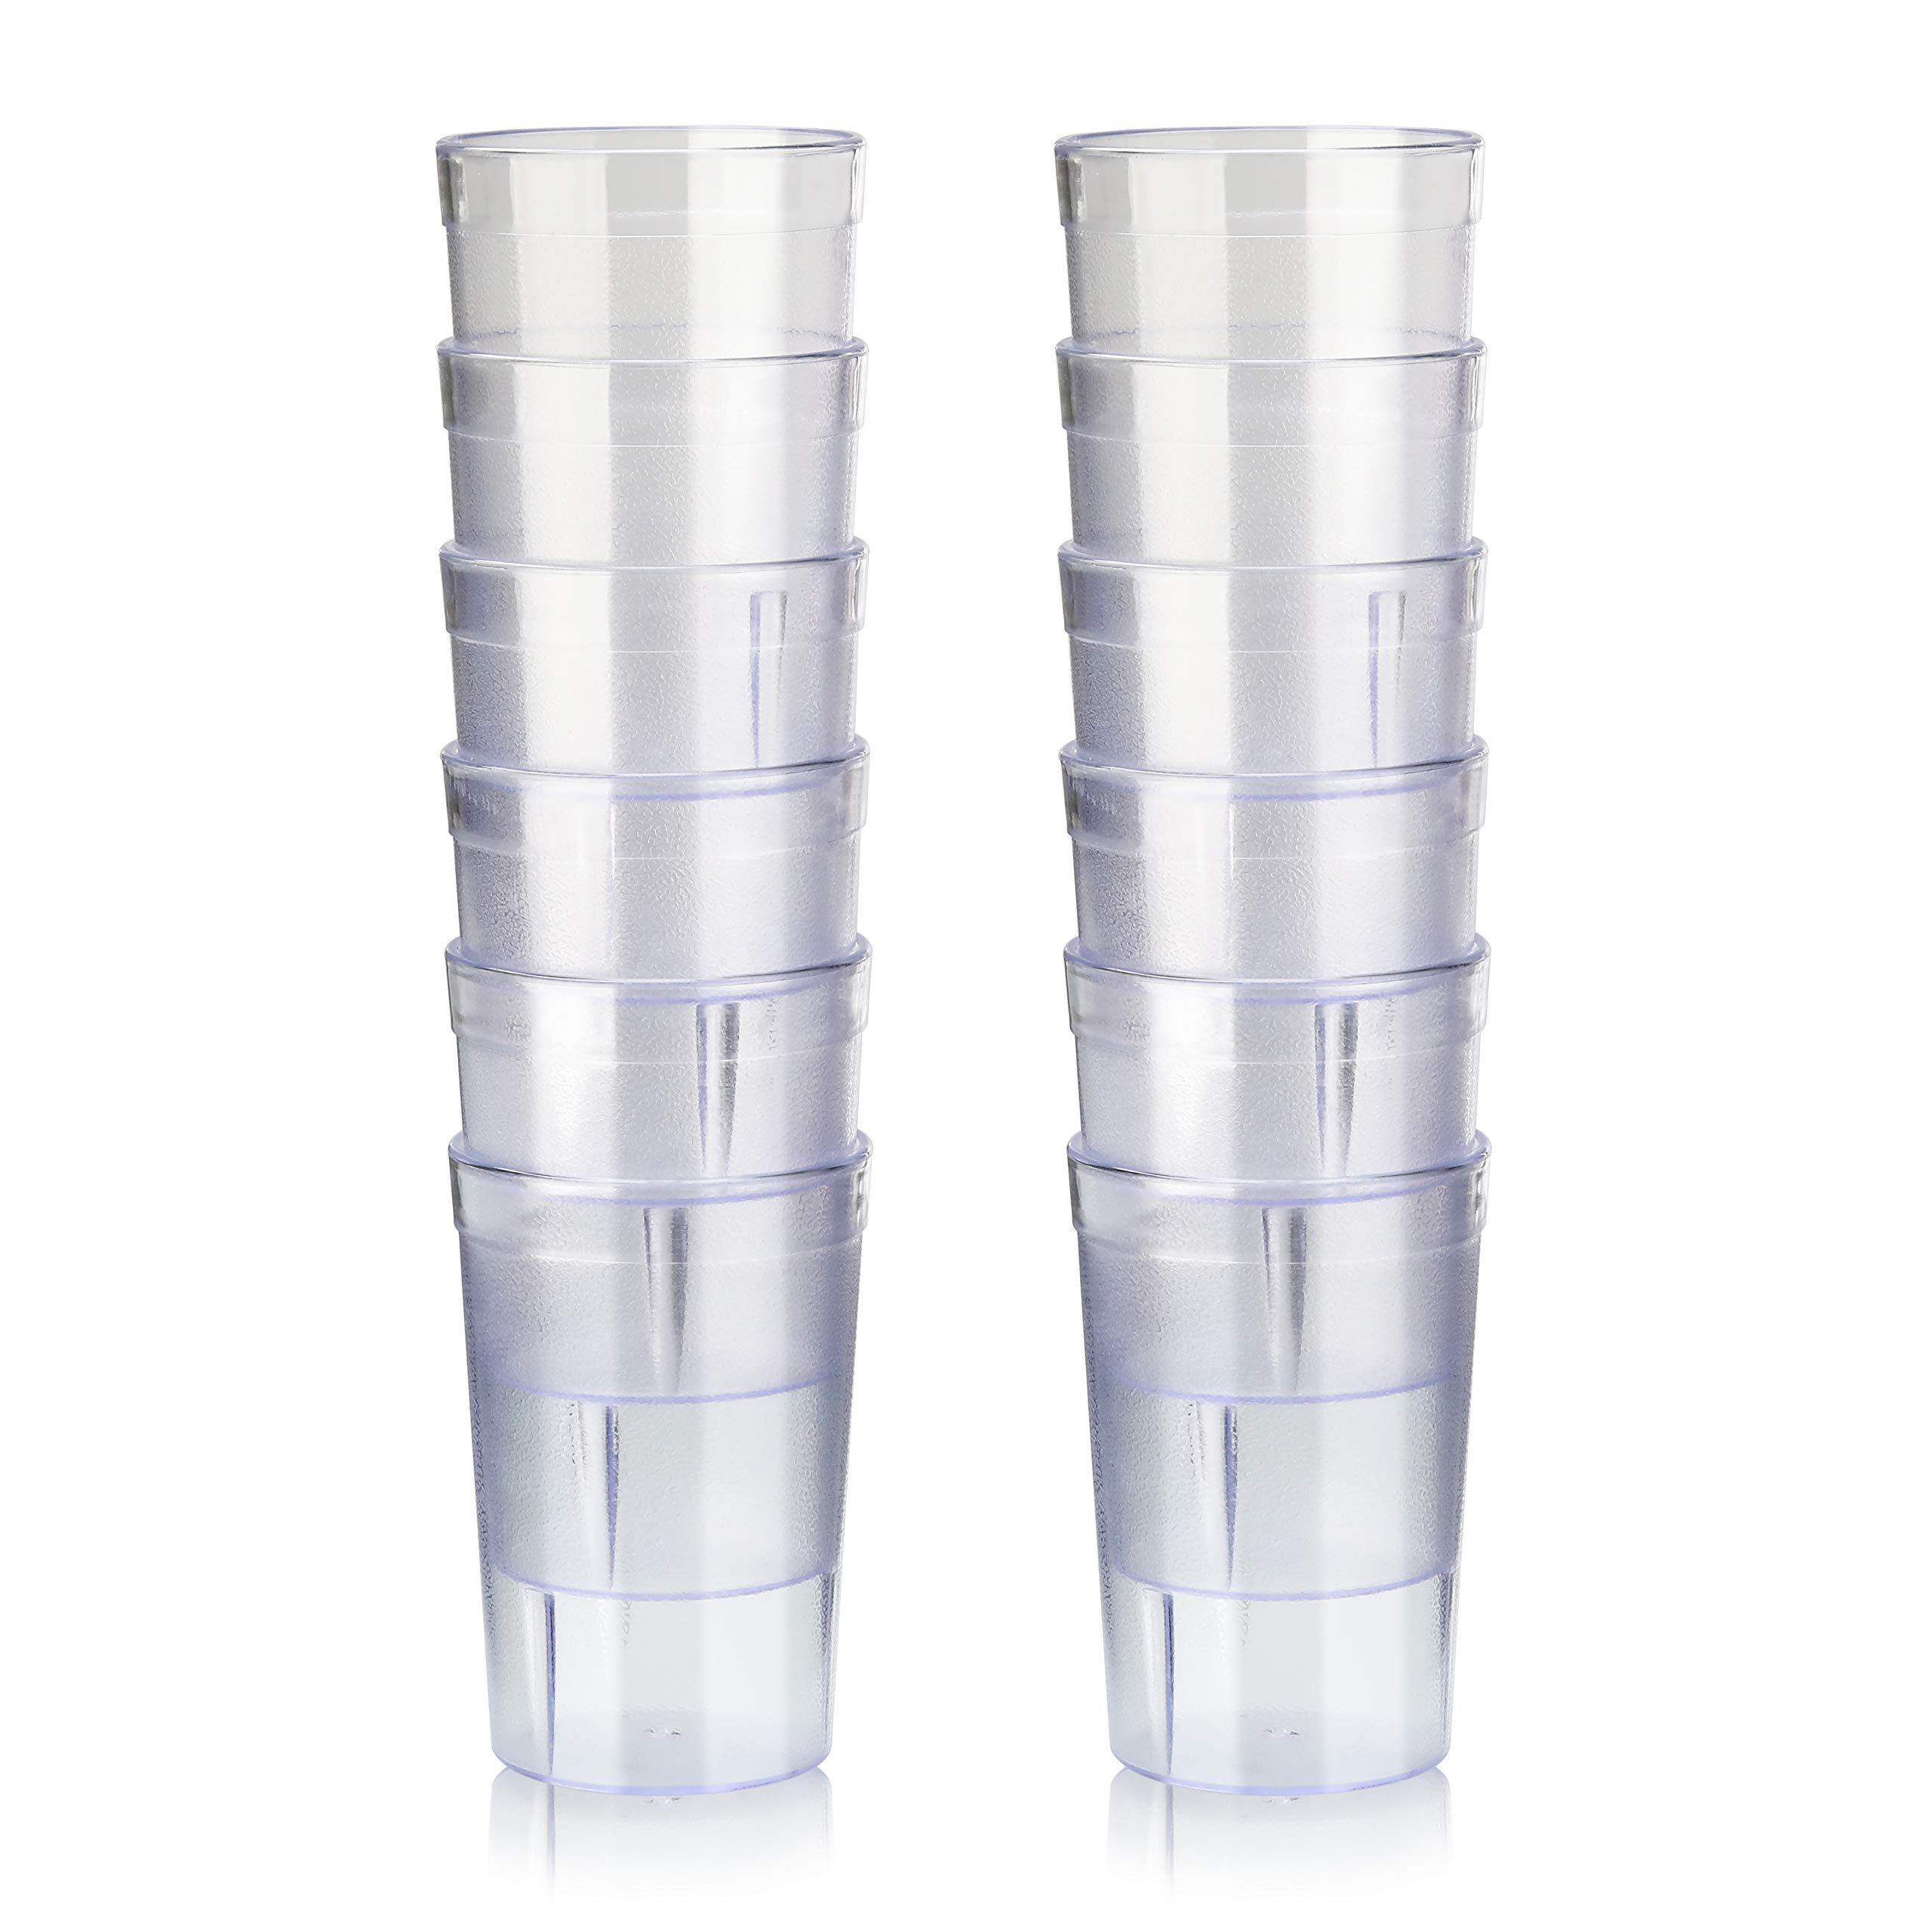 New Star Foodservice 46649 Tumbler Beverage Cup Stackable Cups Break Resistant Commercial San Plastic 8 Oz Clear Set Of 12